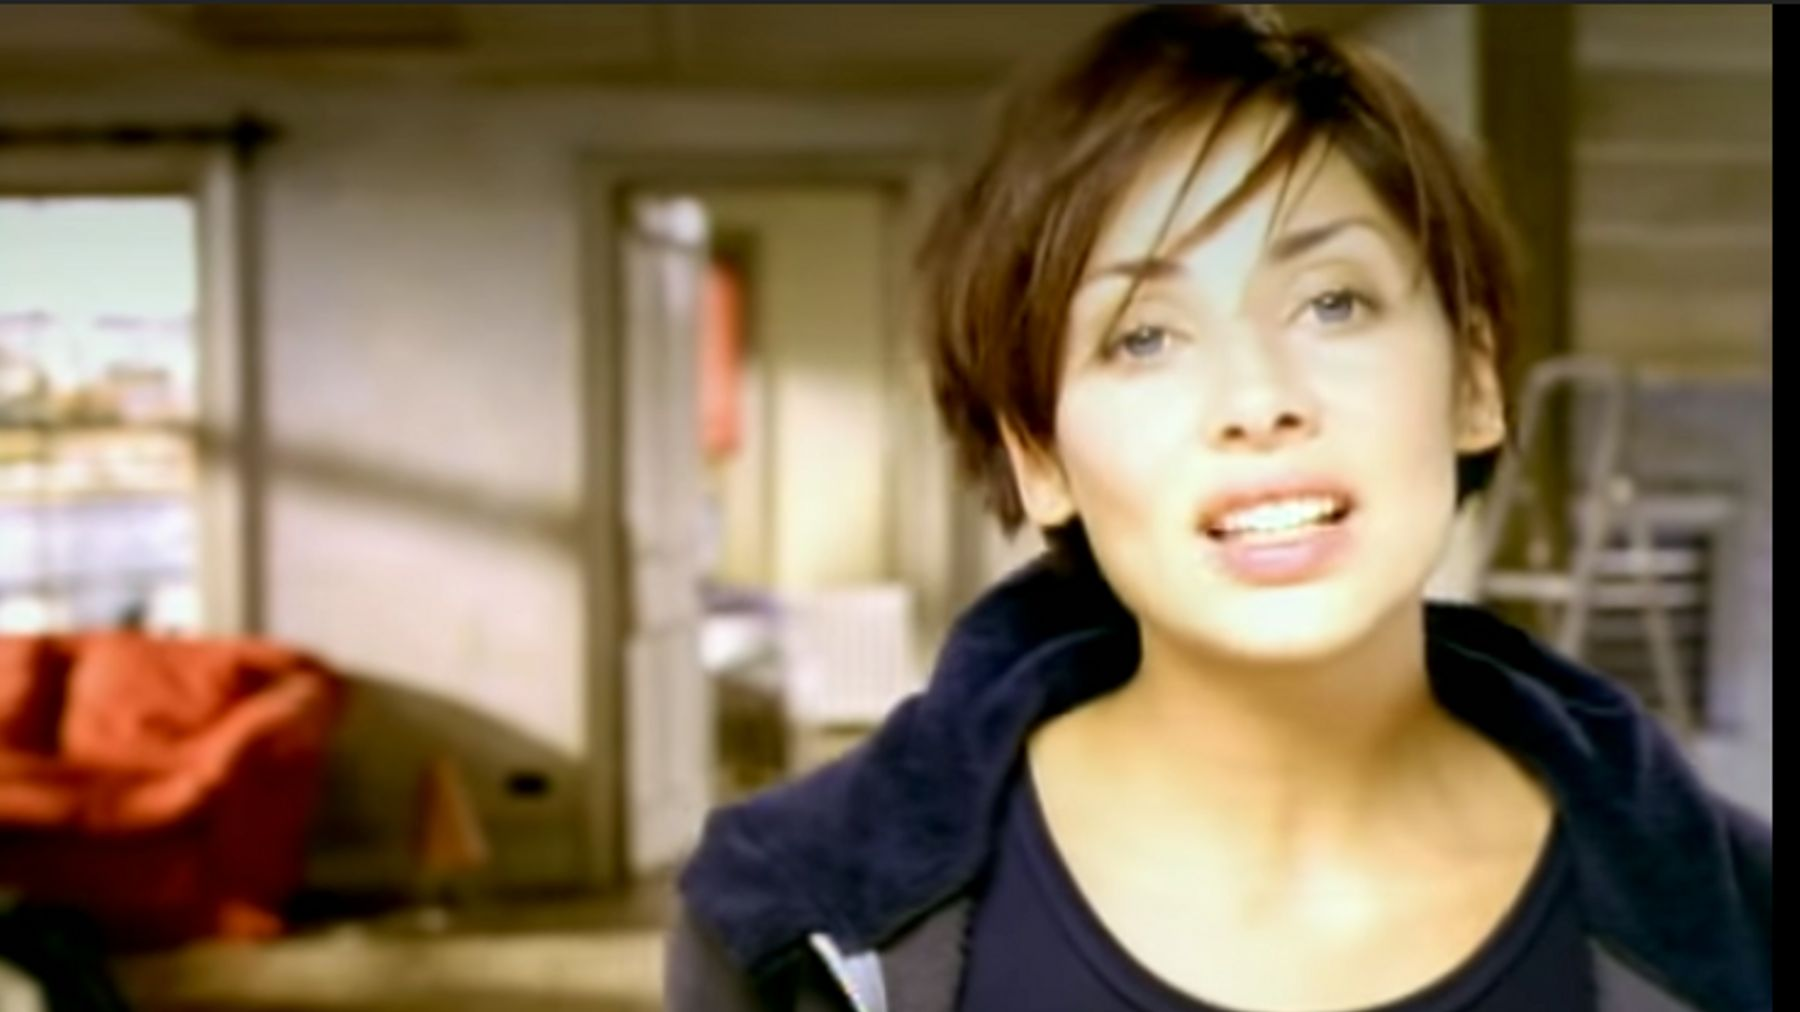 Did You Know That Natalie Imbruglia's 'Torn' Is A Cover